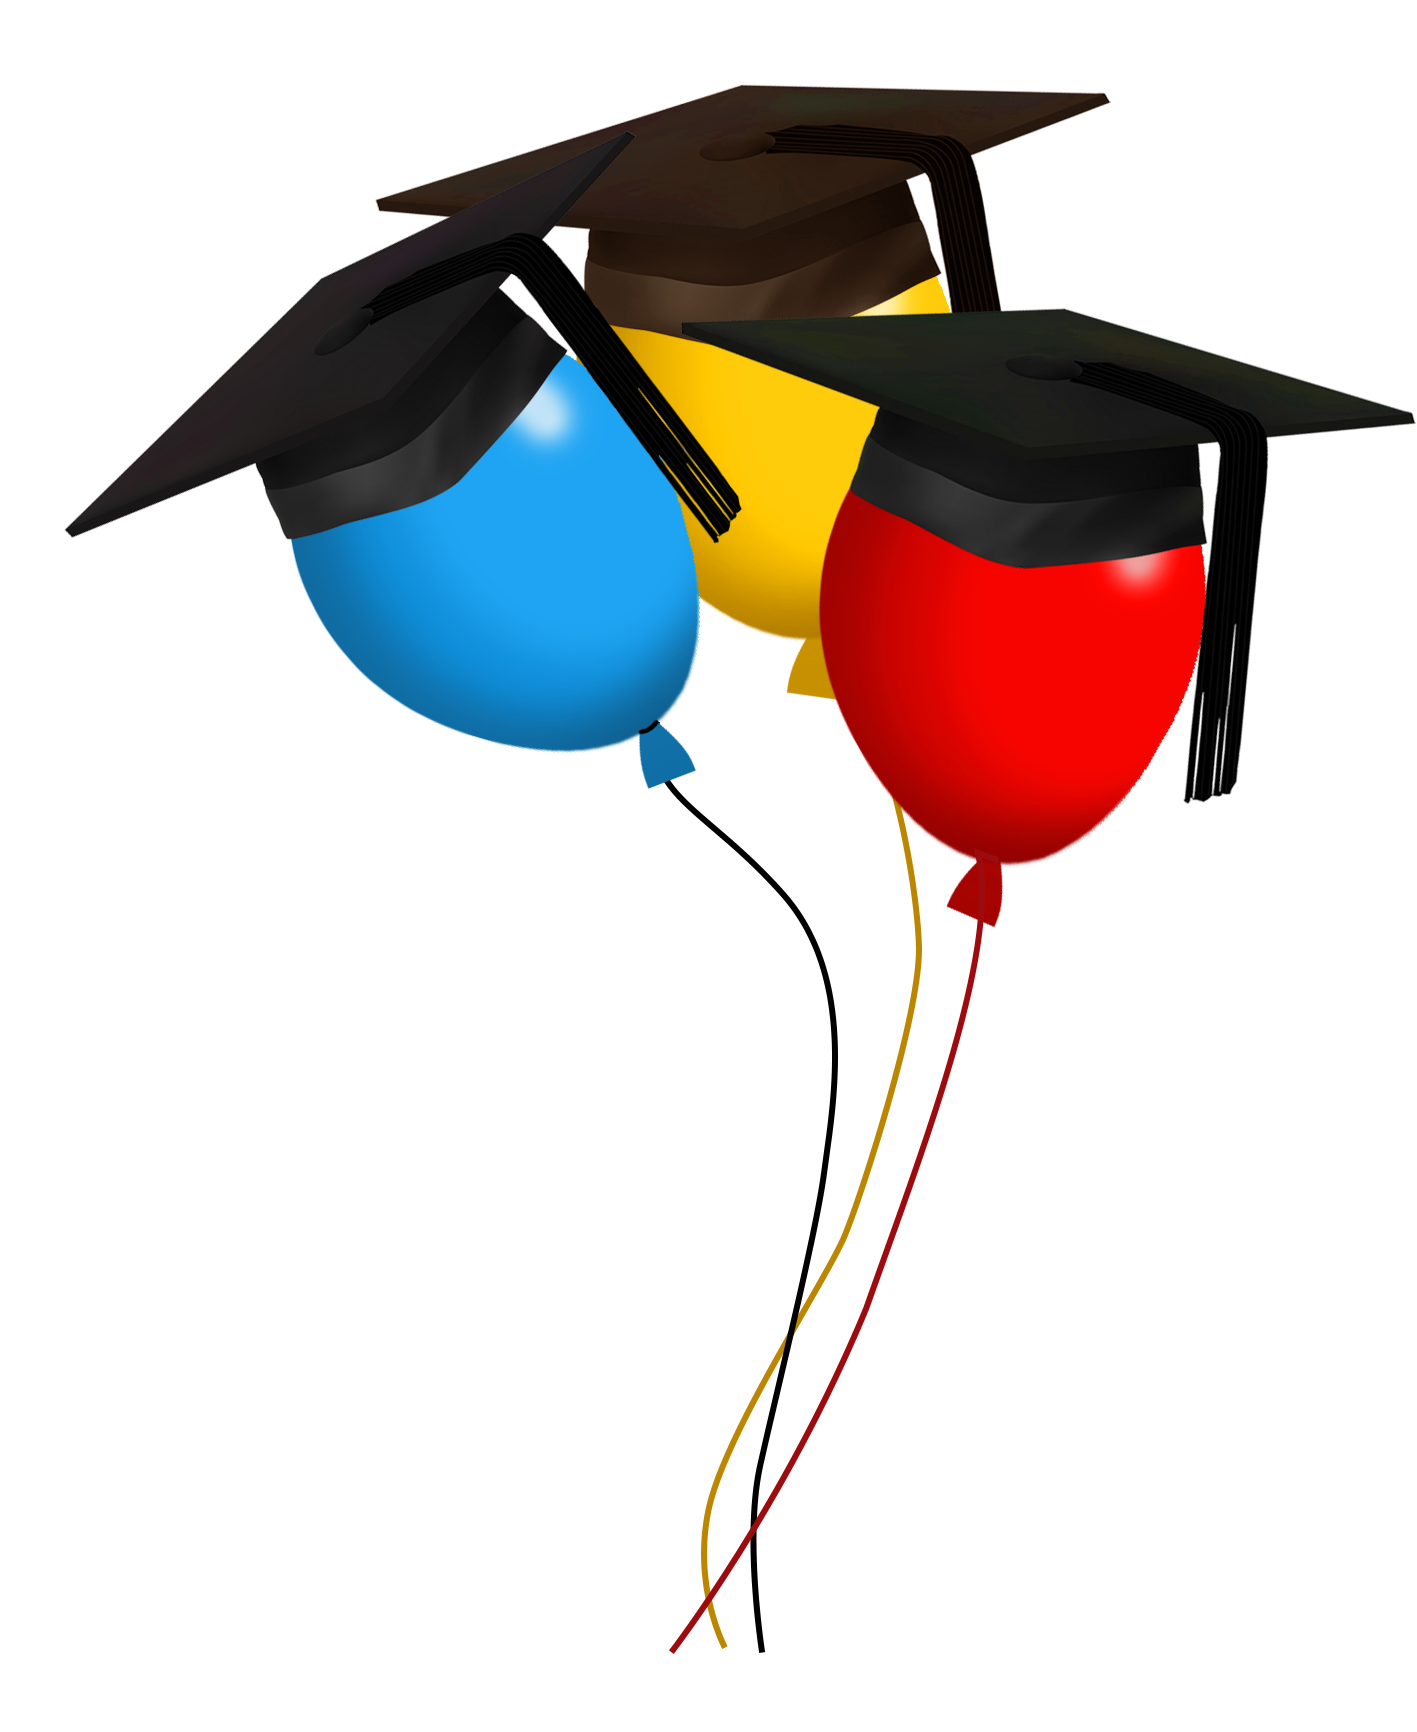 graduation day balloons red-blue-yellow